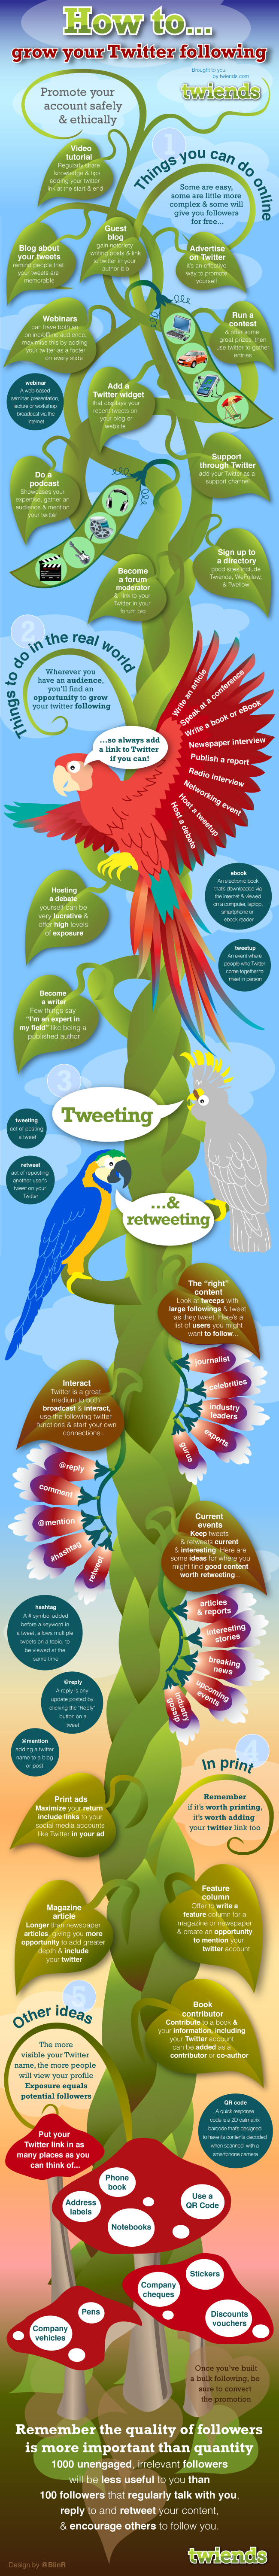 How To Grow Your Twitter Following Infographic